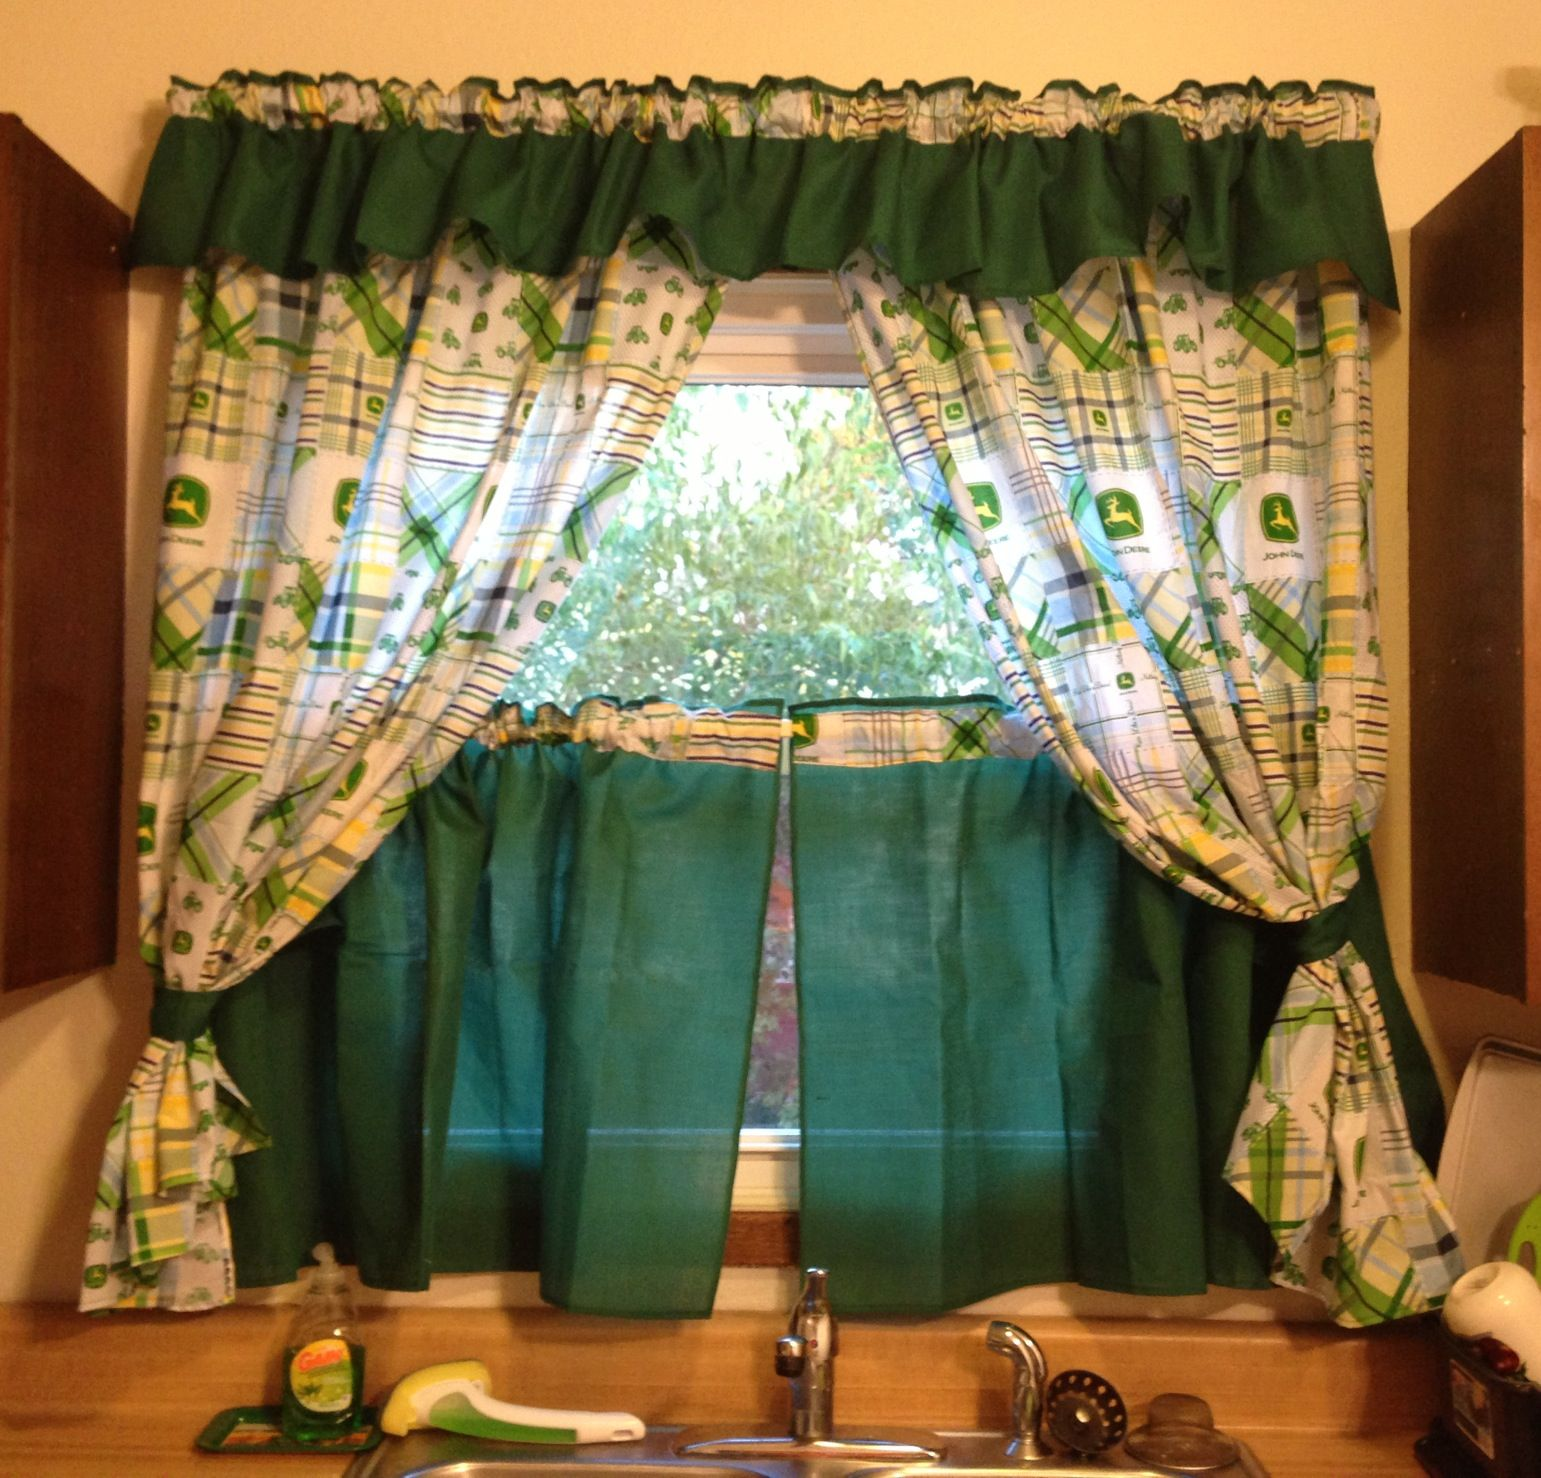 John Deere Kitchen Decor 1. My New John Deere Kitchen Curtains Love Them D